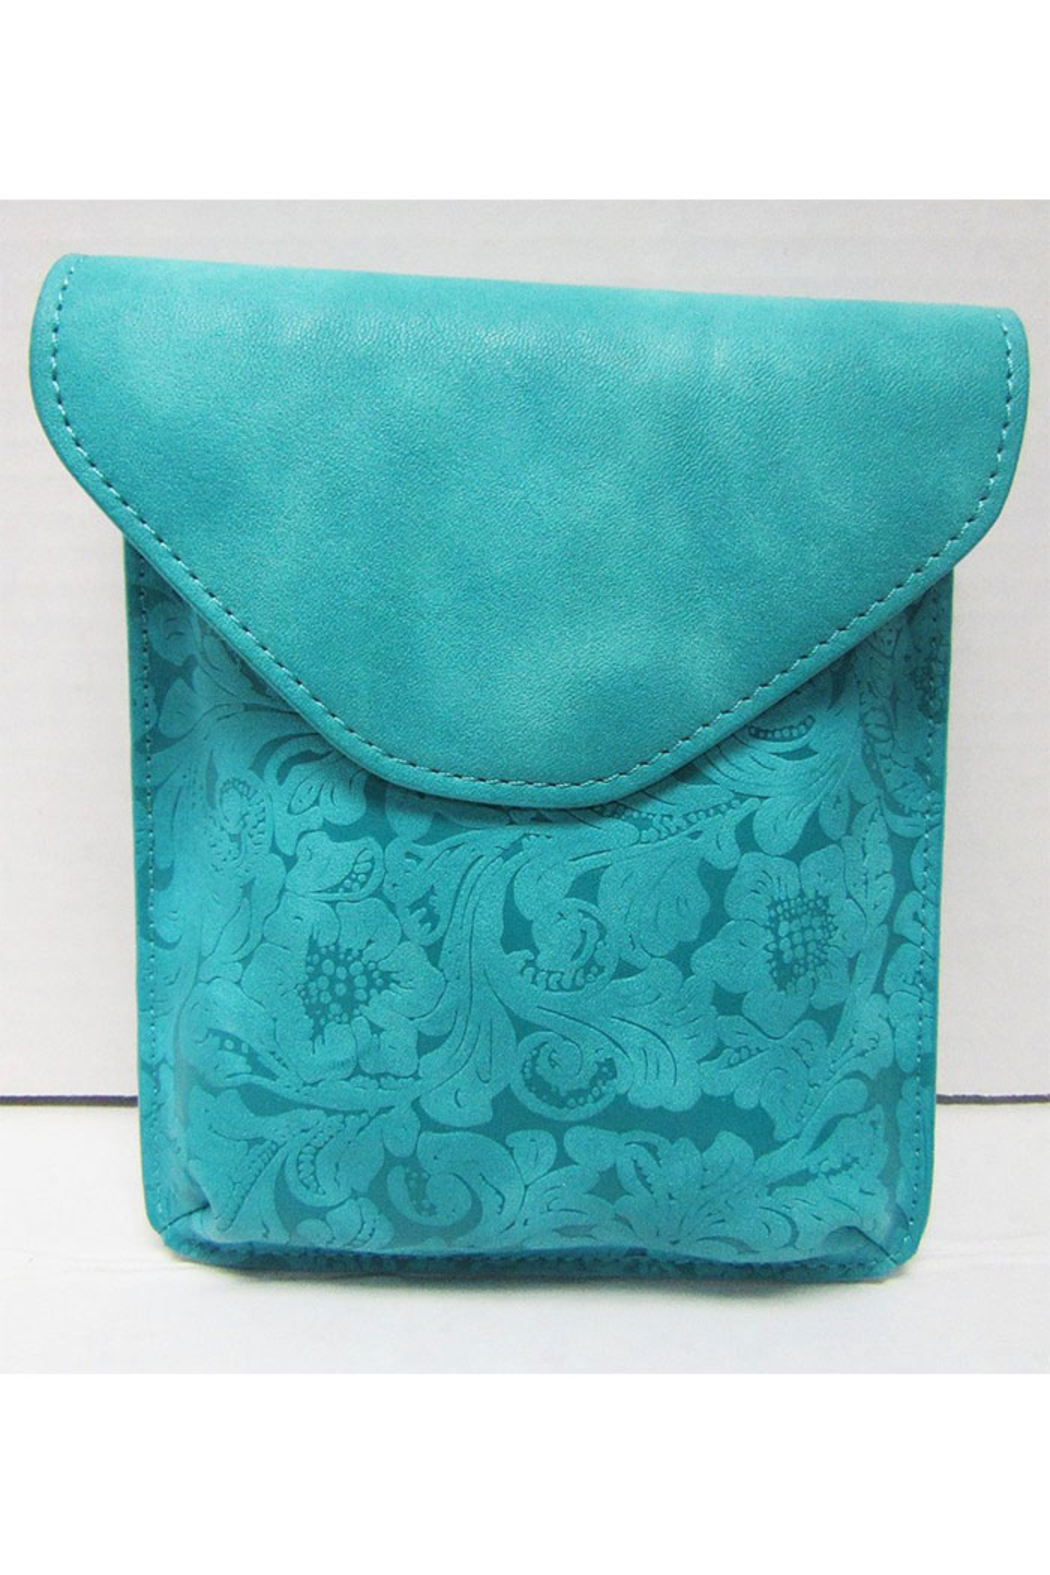 KIMBALS Turquoise Leather Clutch - Main Image